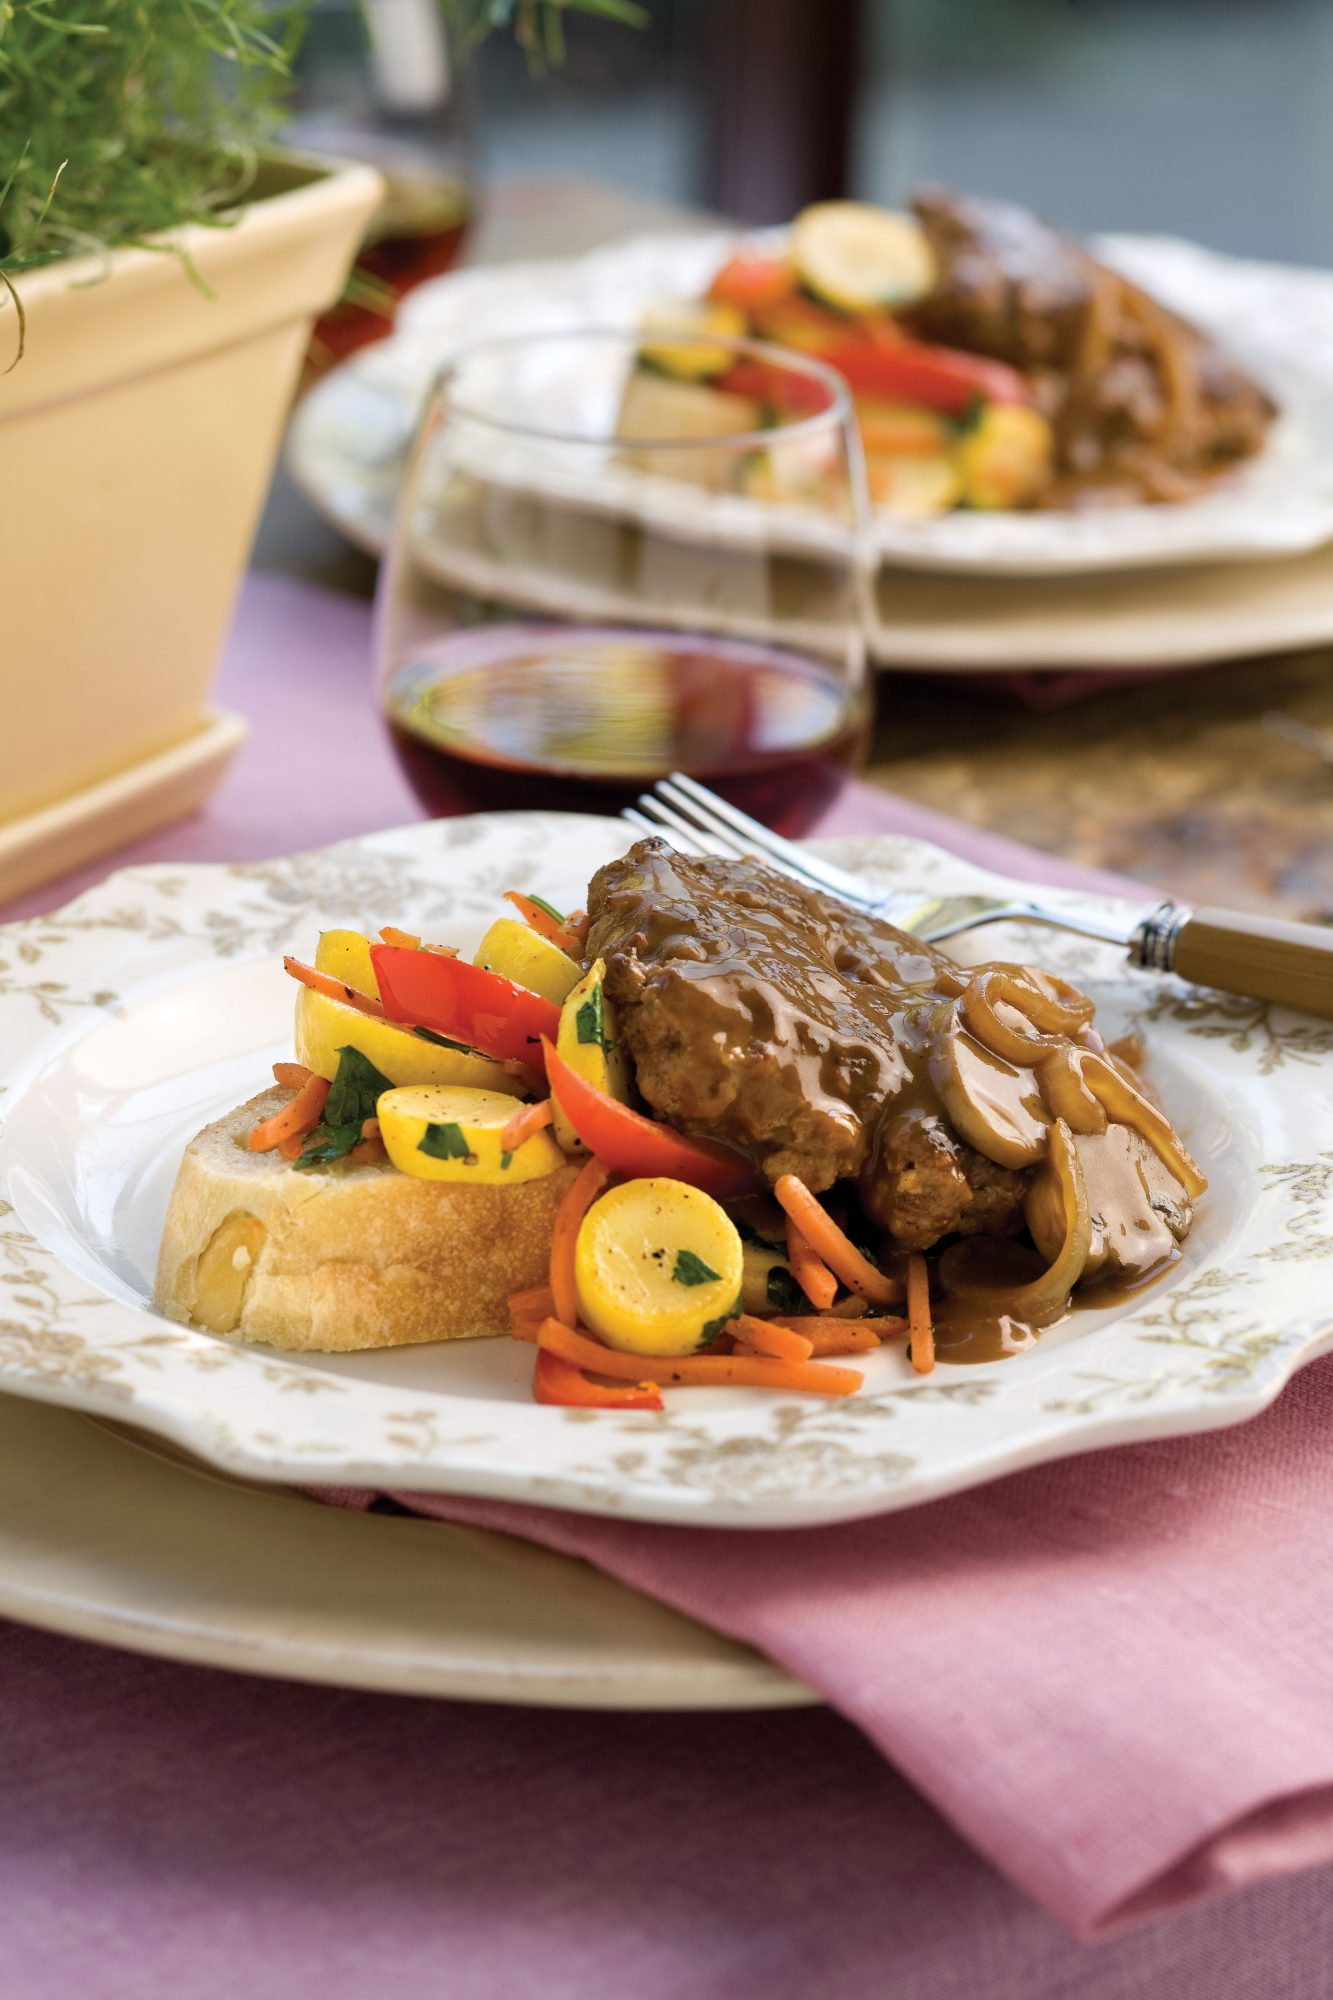 Ground Beef Recipes: Hamburger Steak With Sweet Onion-Mushroom Gravy